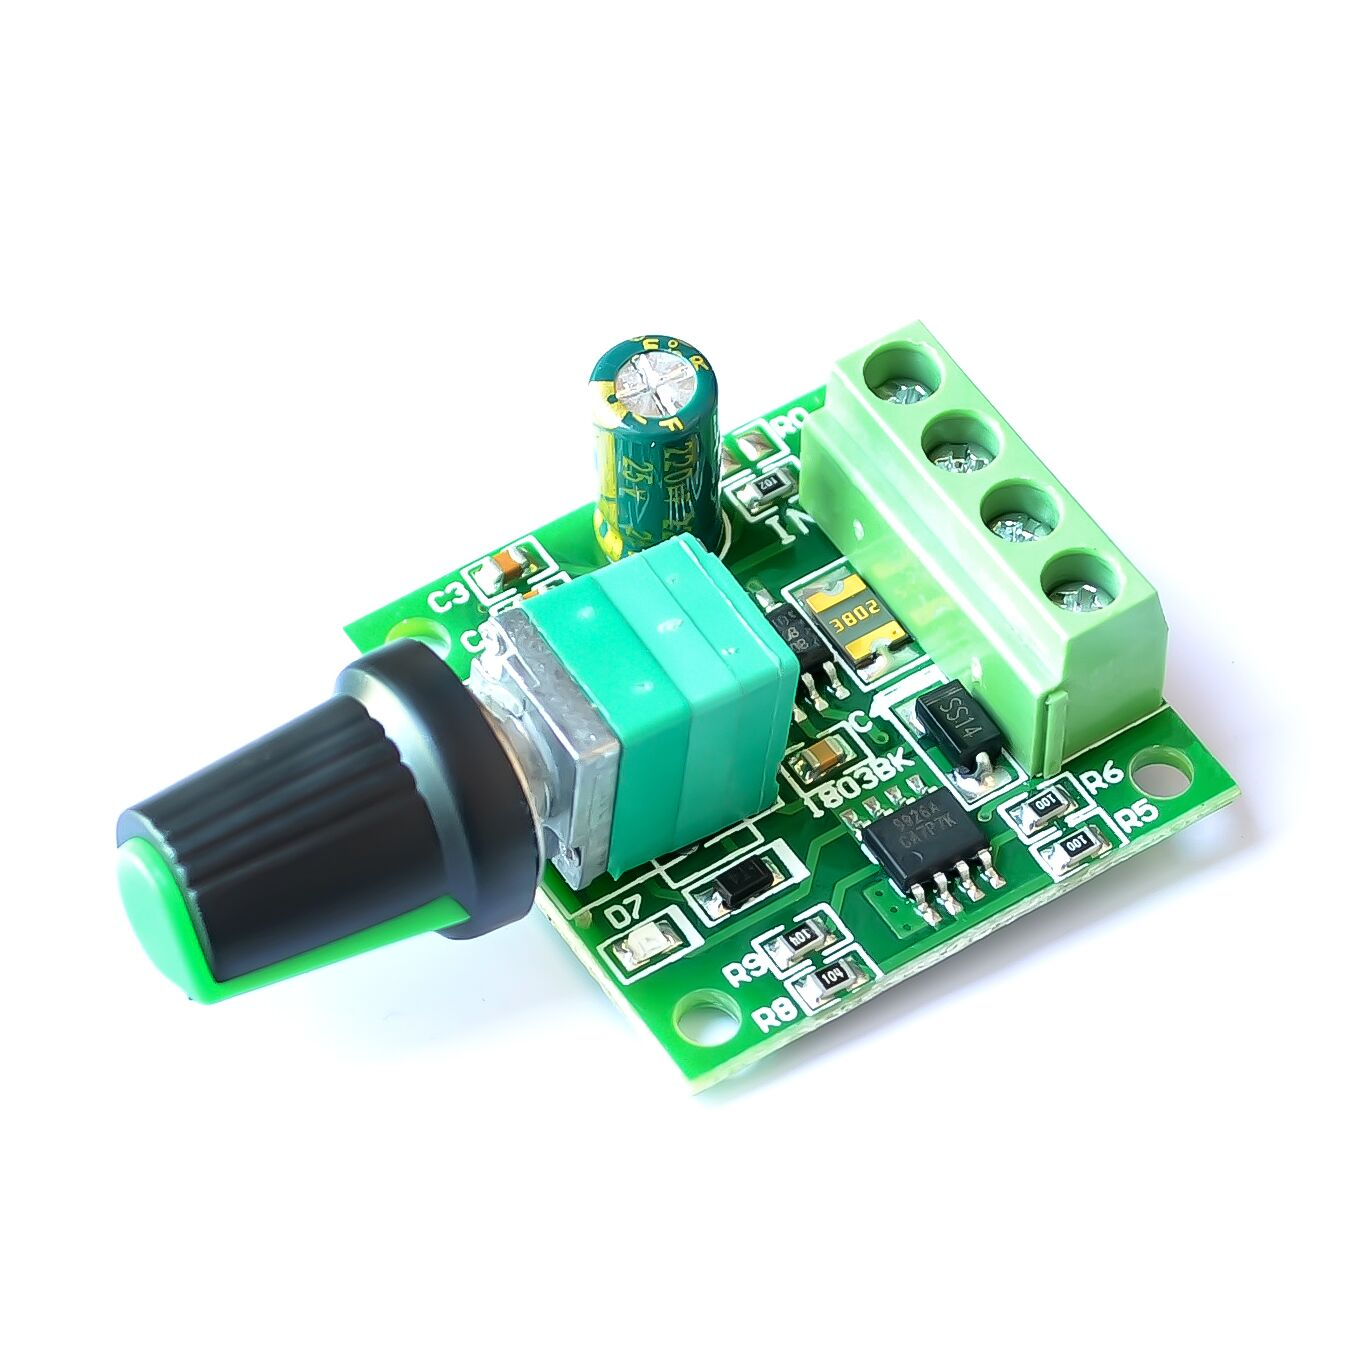 DC Motor Drive With a Self-Recovery Fuse And Power-On LED light